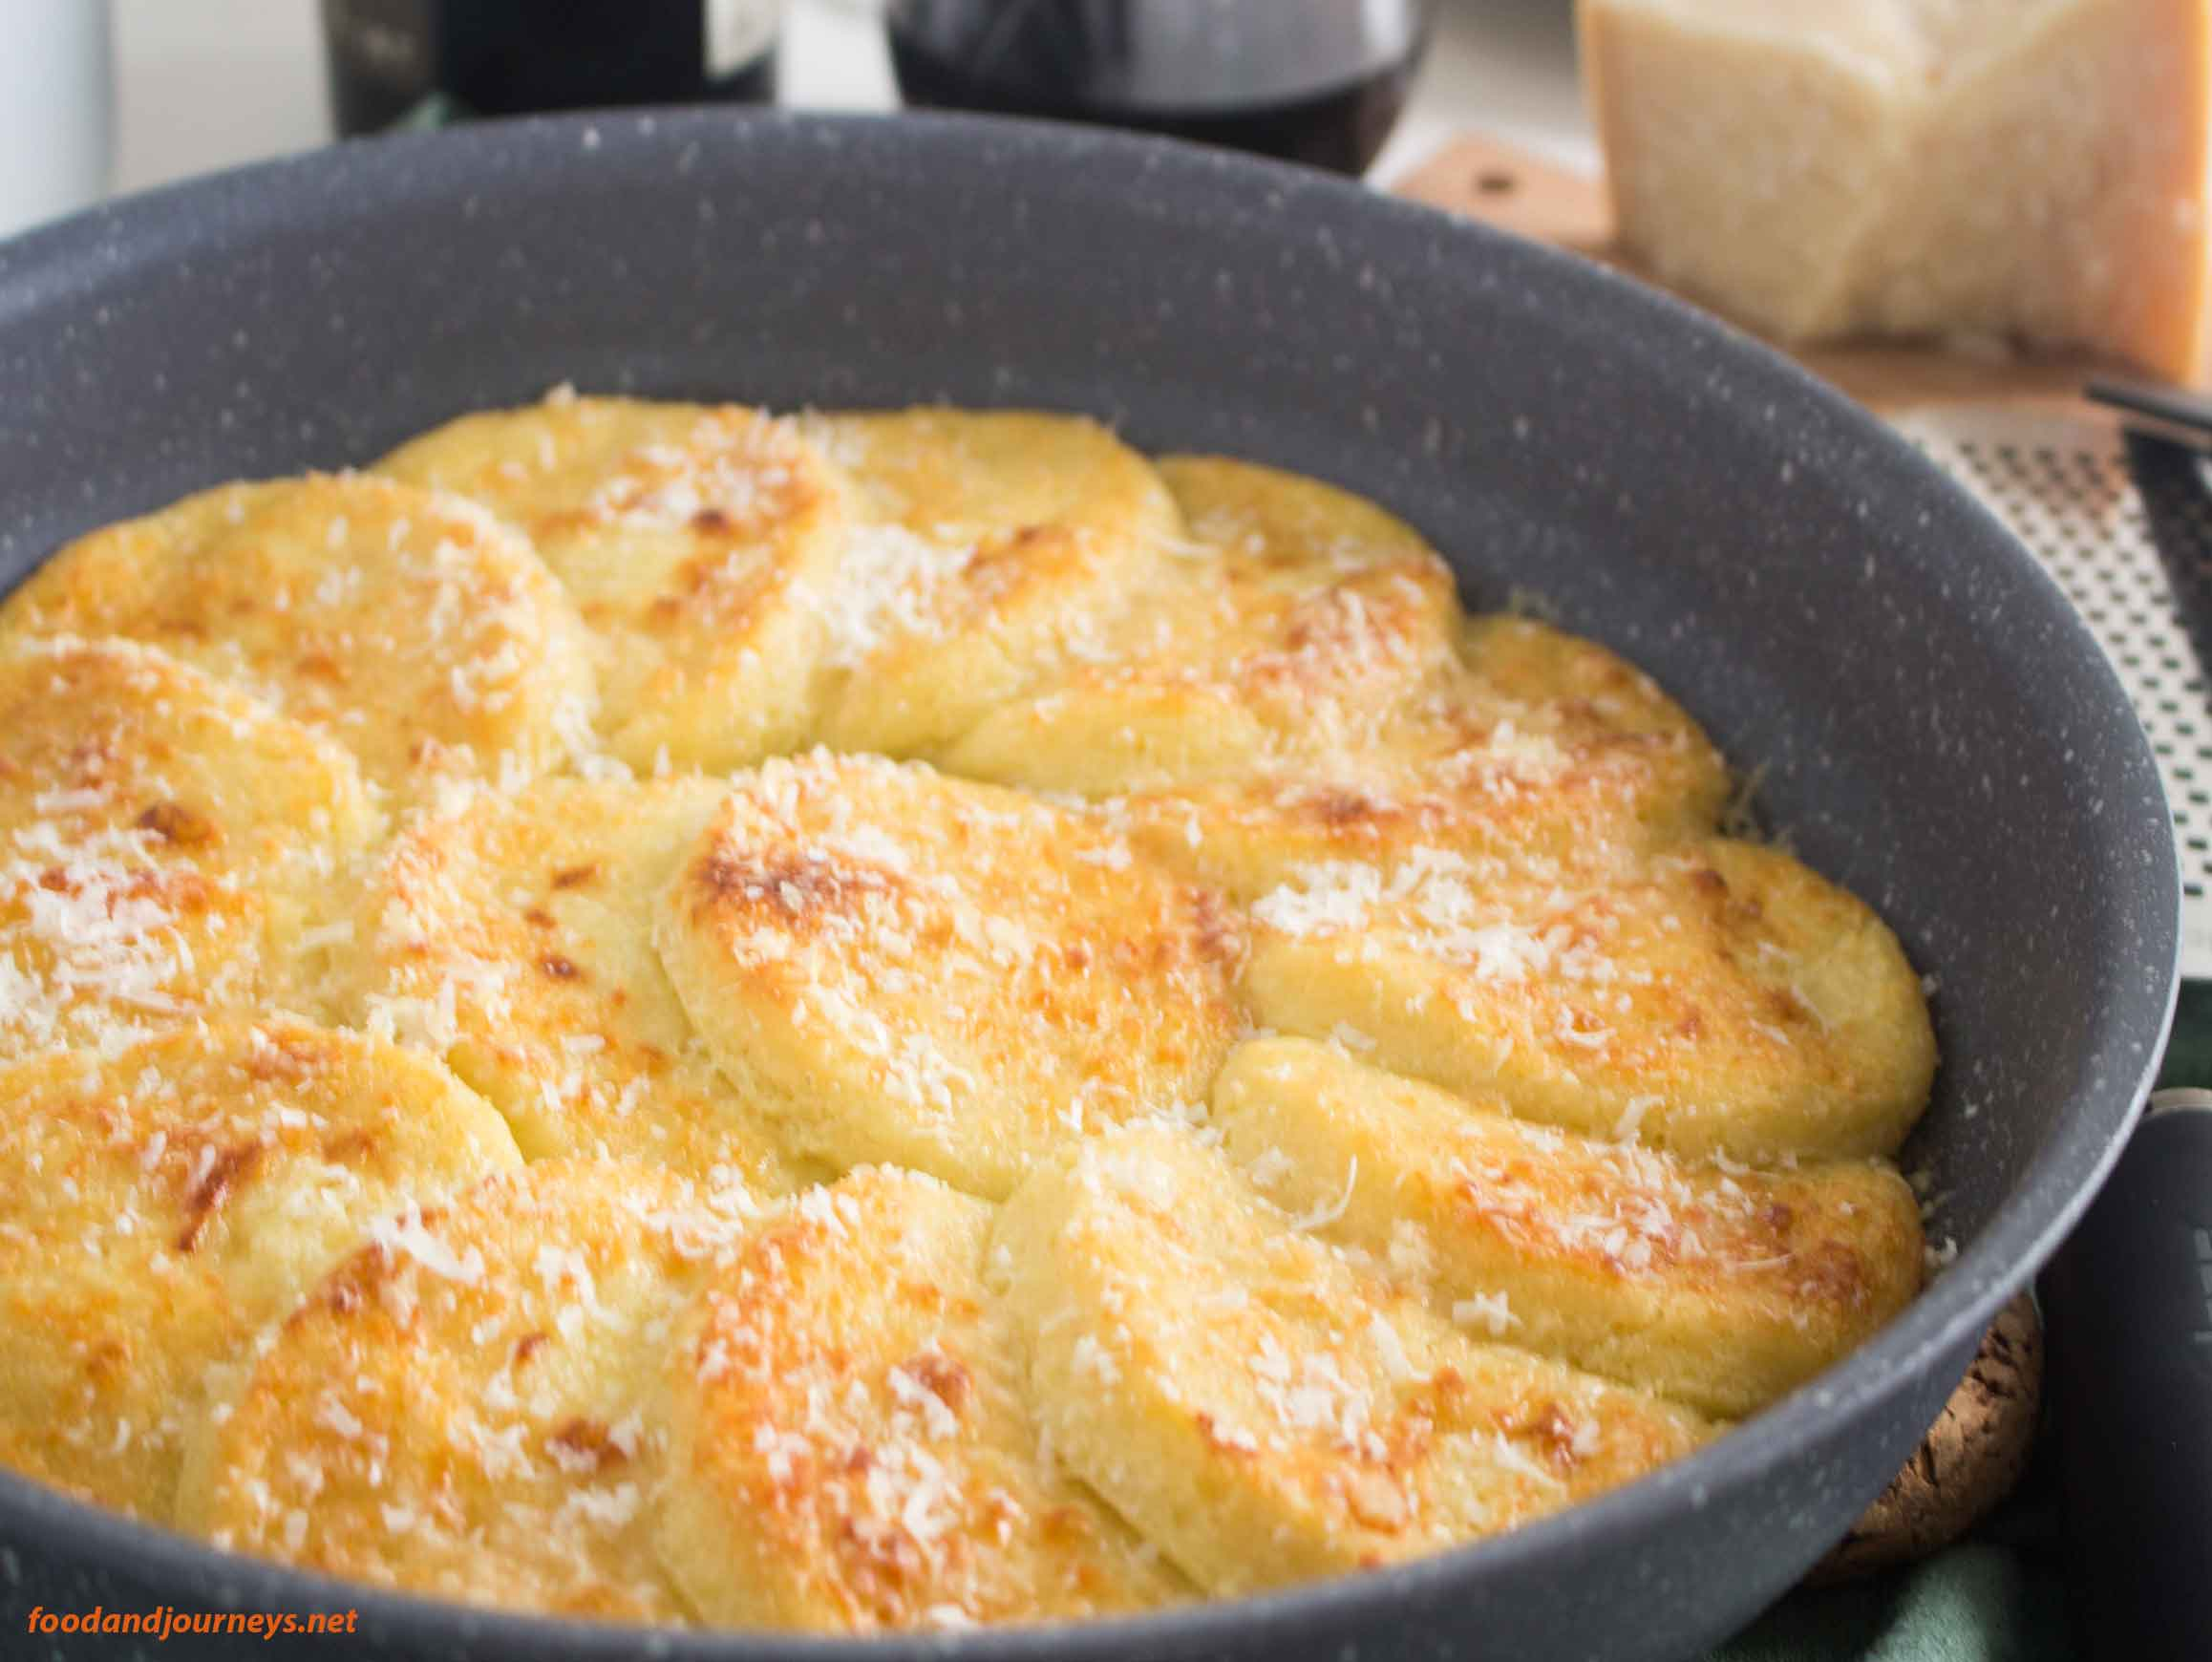 baked semolina gnocchi in a nonstick pan with cheese and wine on the side|foodandjourneys.net